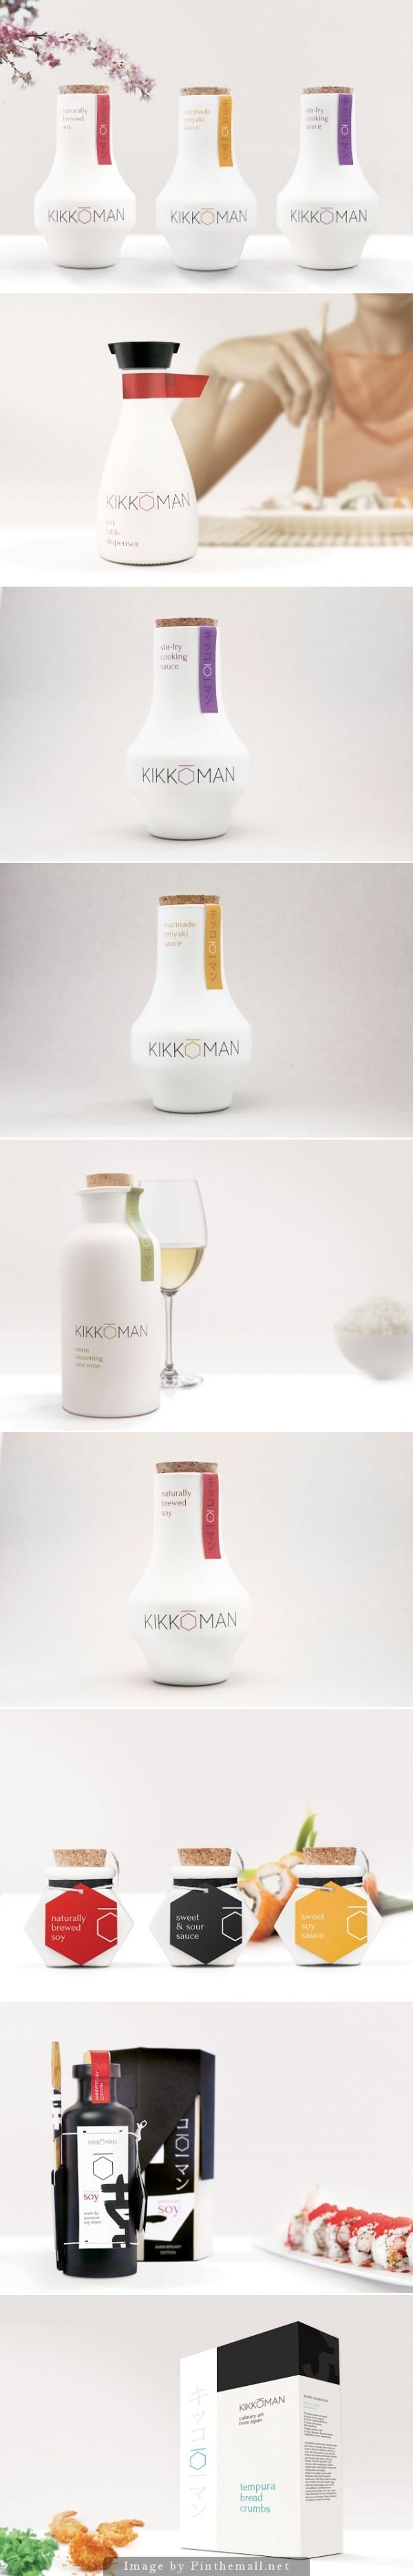 Great Kikkoman rebranding student product #packaging curated by Packaging Diva PD created via http://www.packagingoftheworld.com/2014/06/kikkoman-rebranding-student-project.html